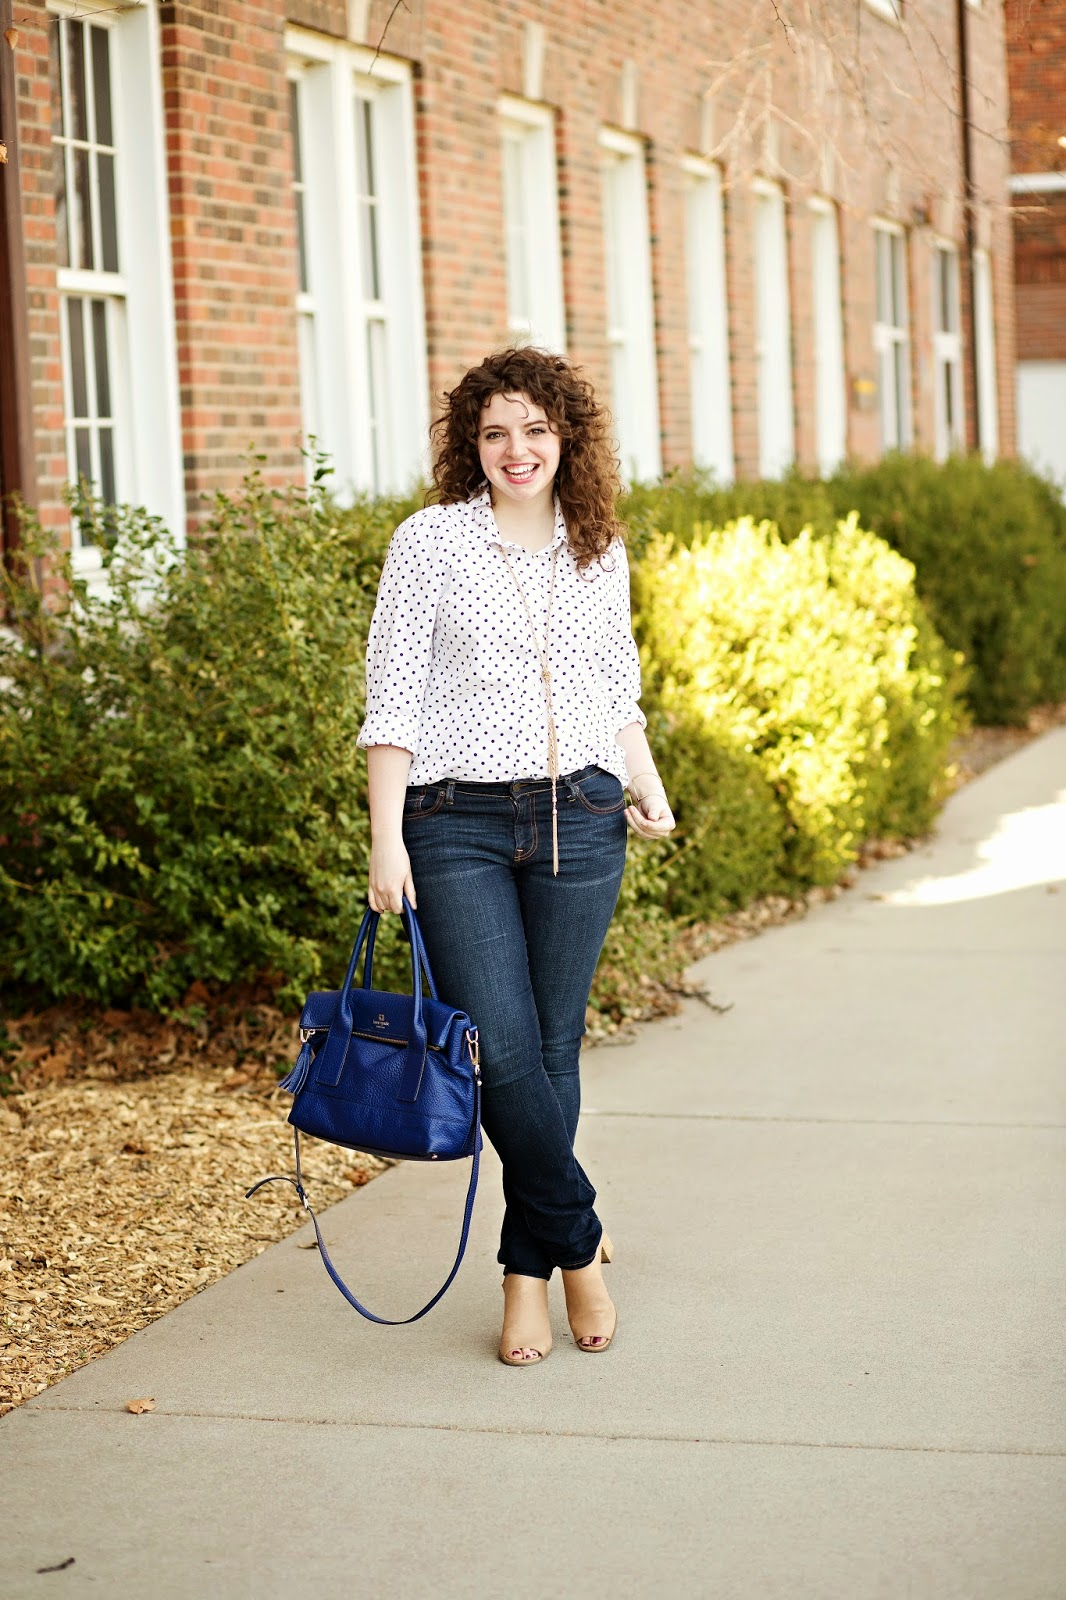 Cute, casual polka dot top outfit with jeans